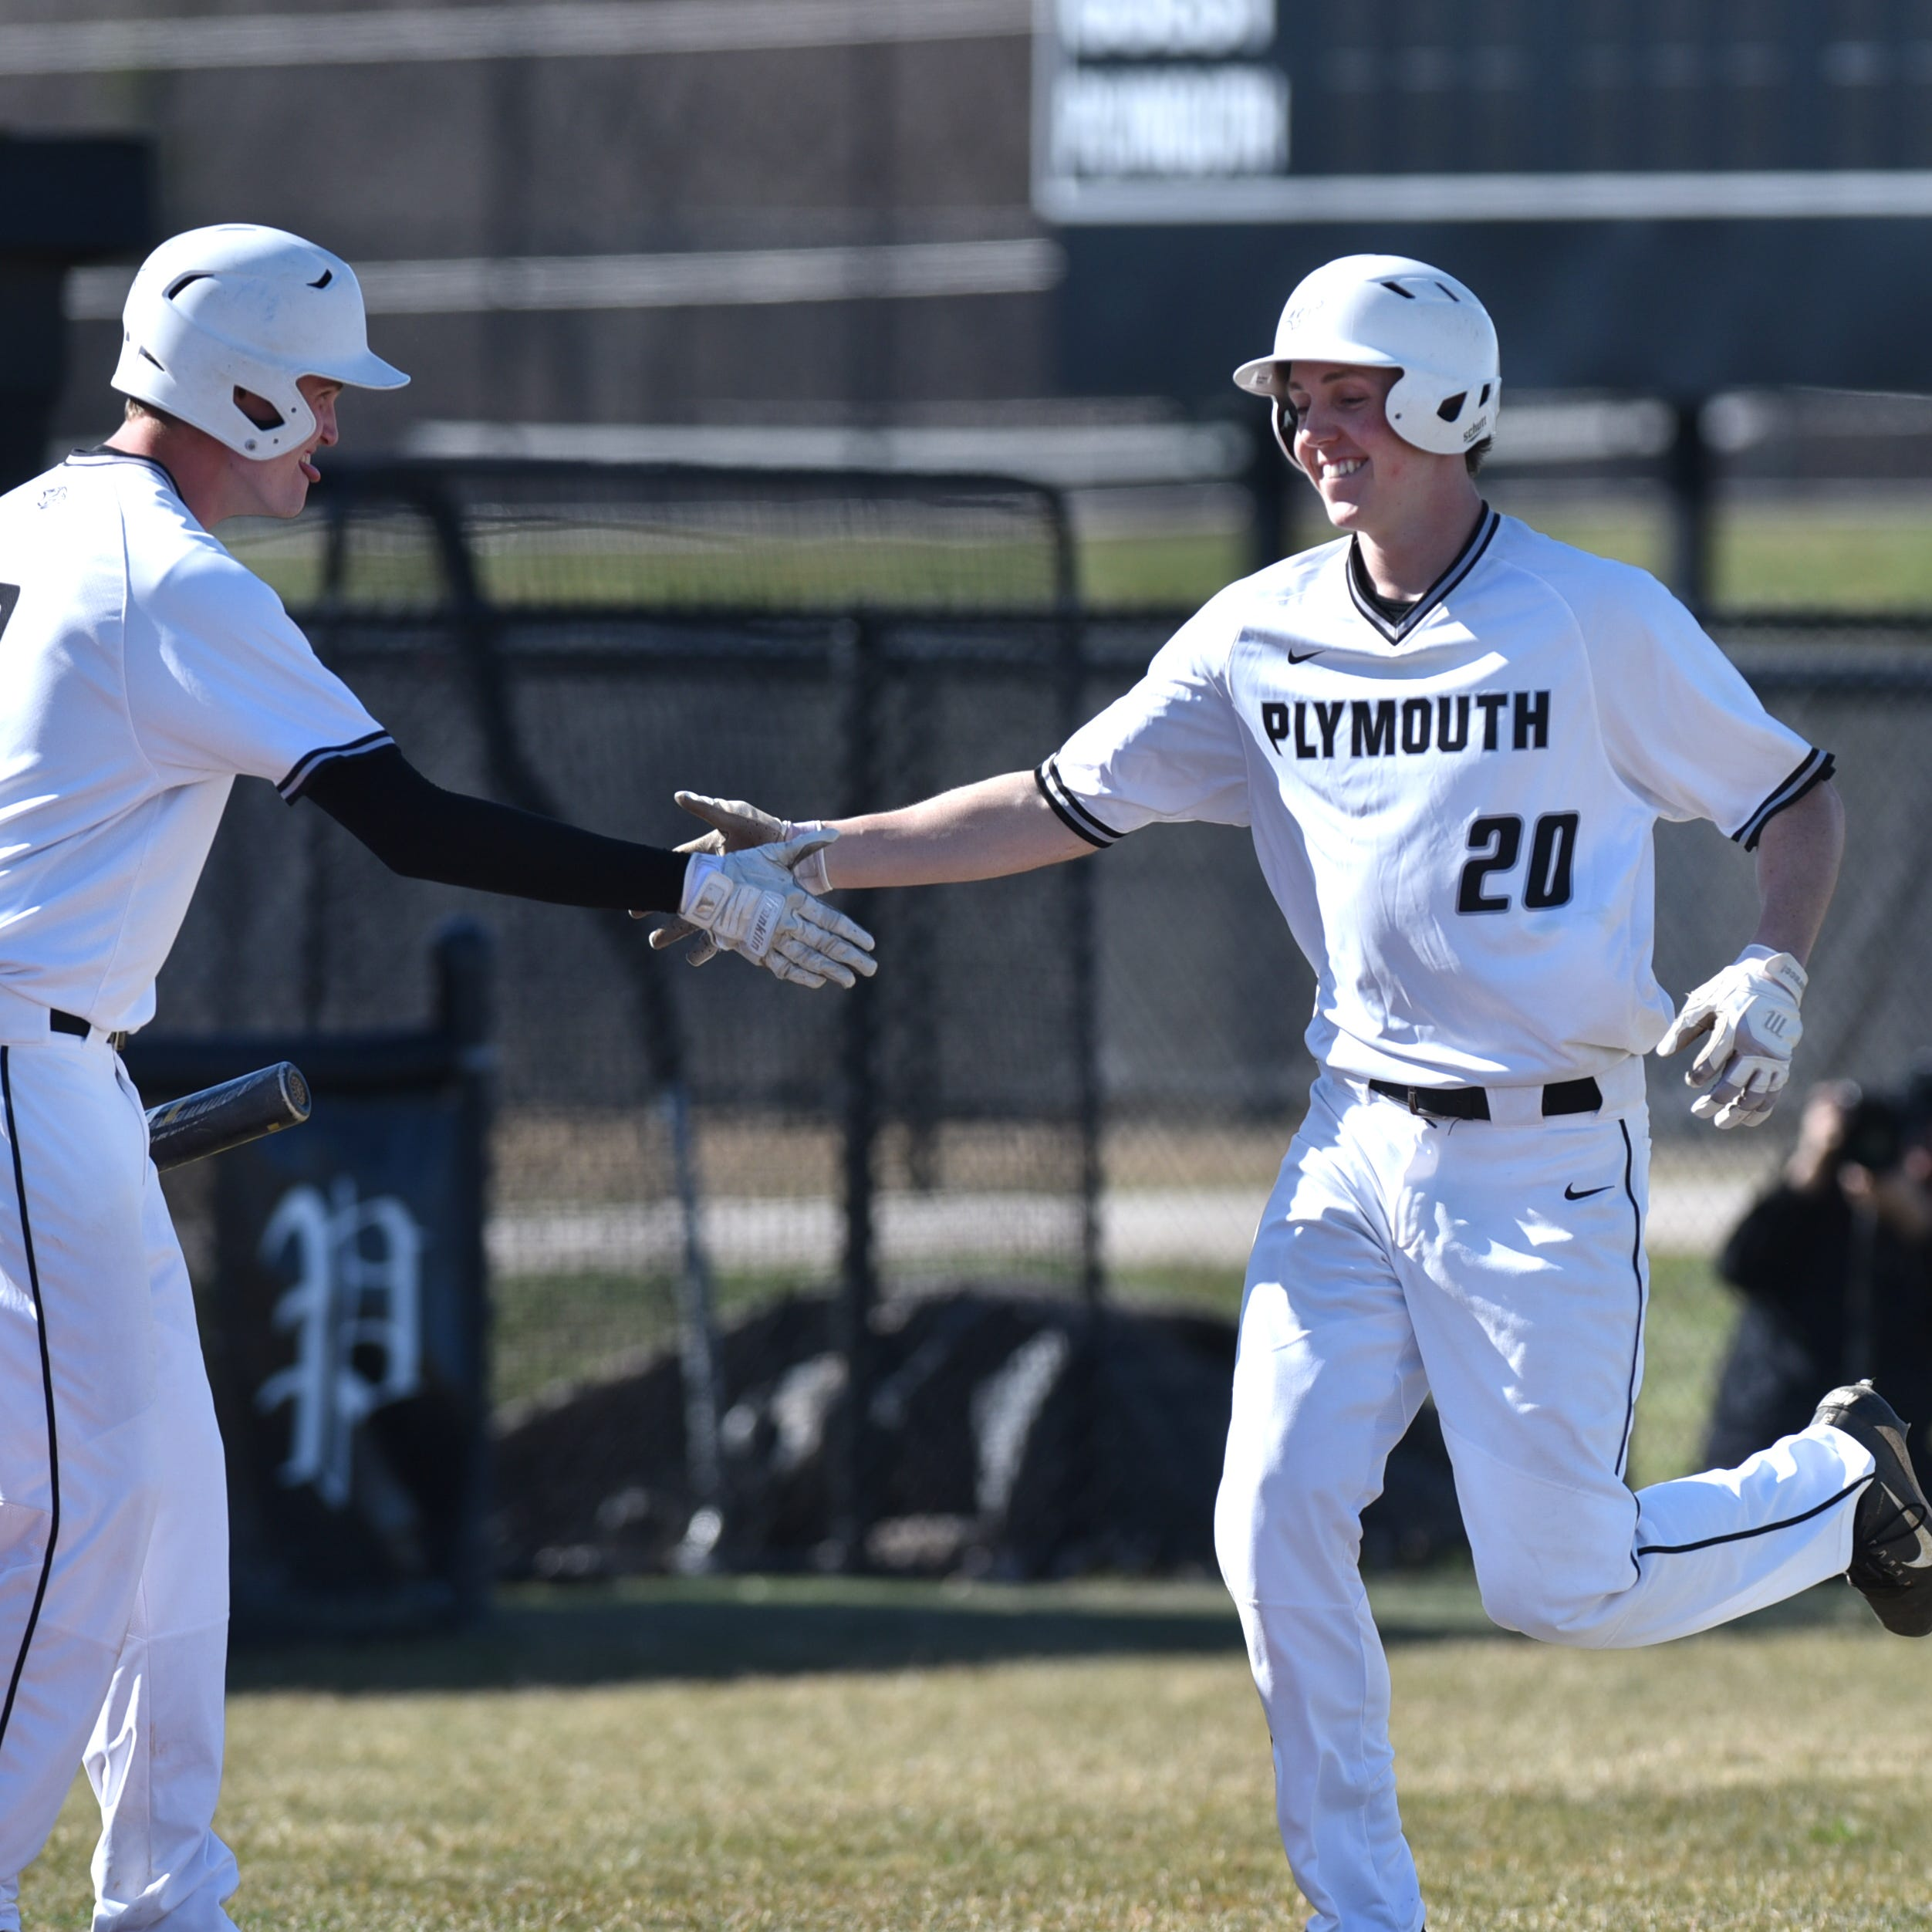 Plymouth baseball crushes Northville in KLAA showdown